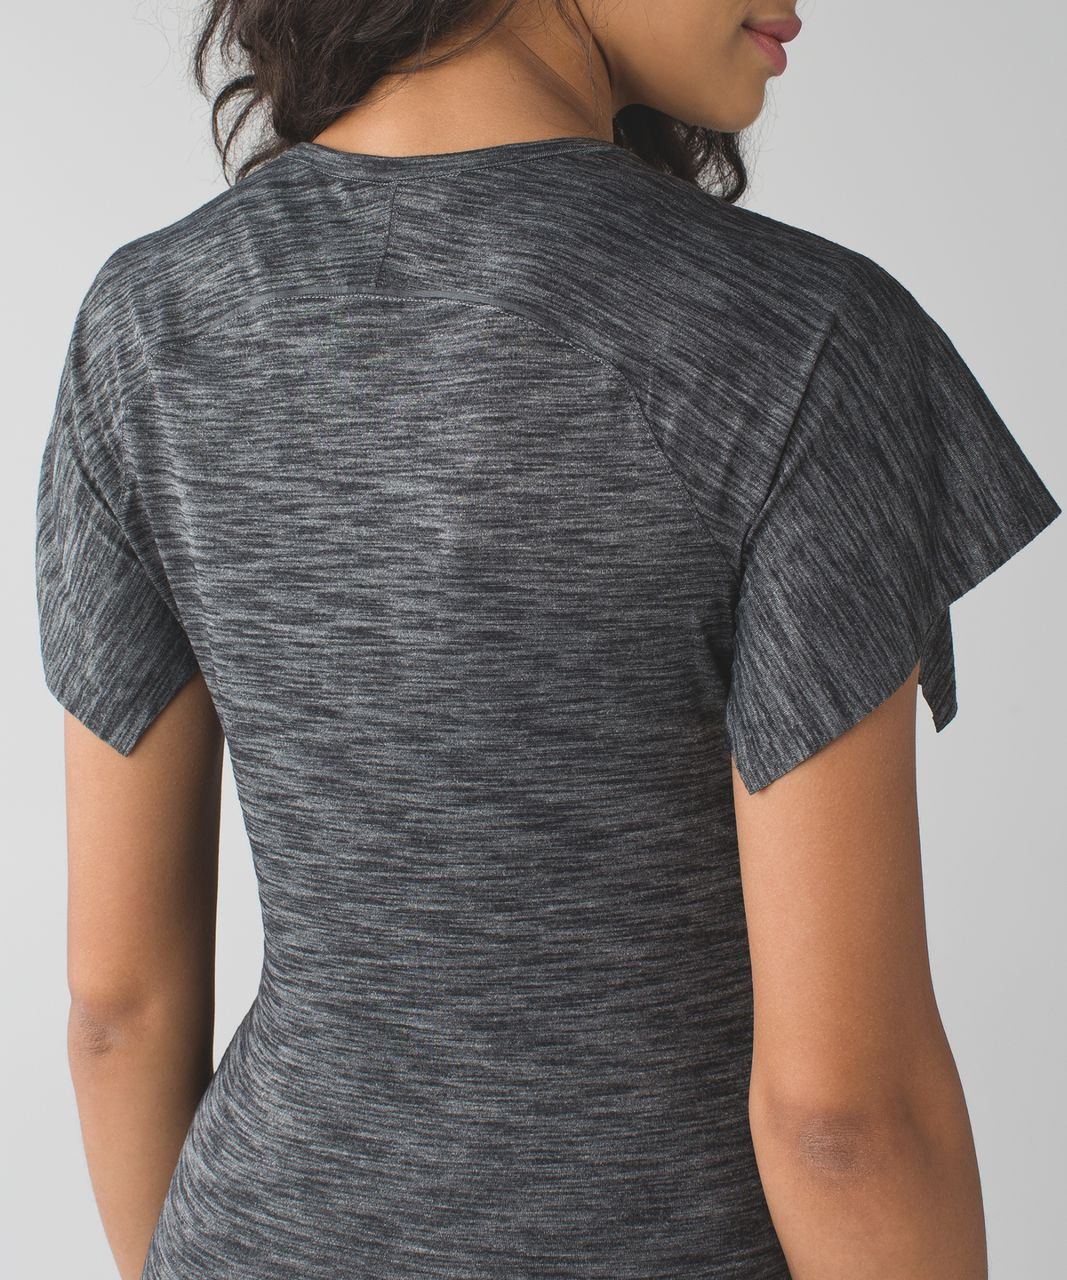 Lululemon &go Take-Off Tee - Heathered Black